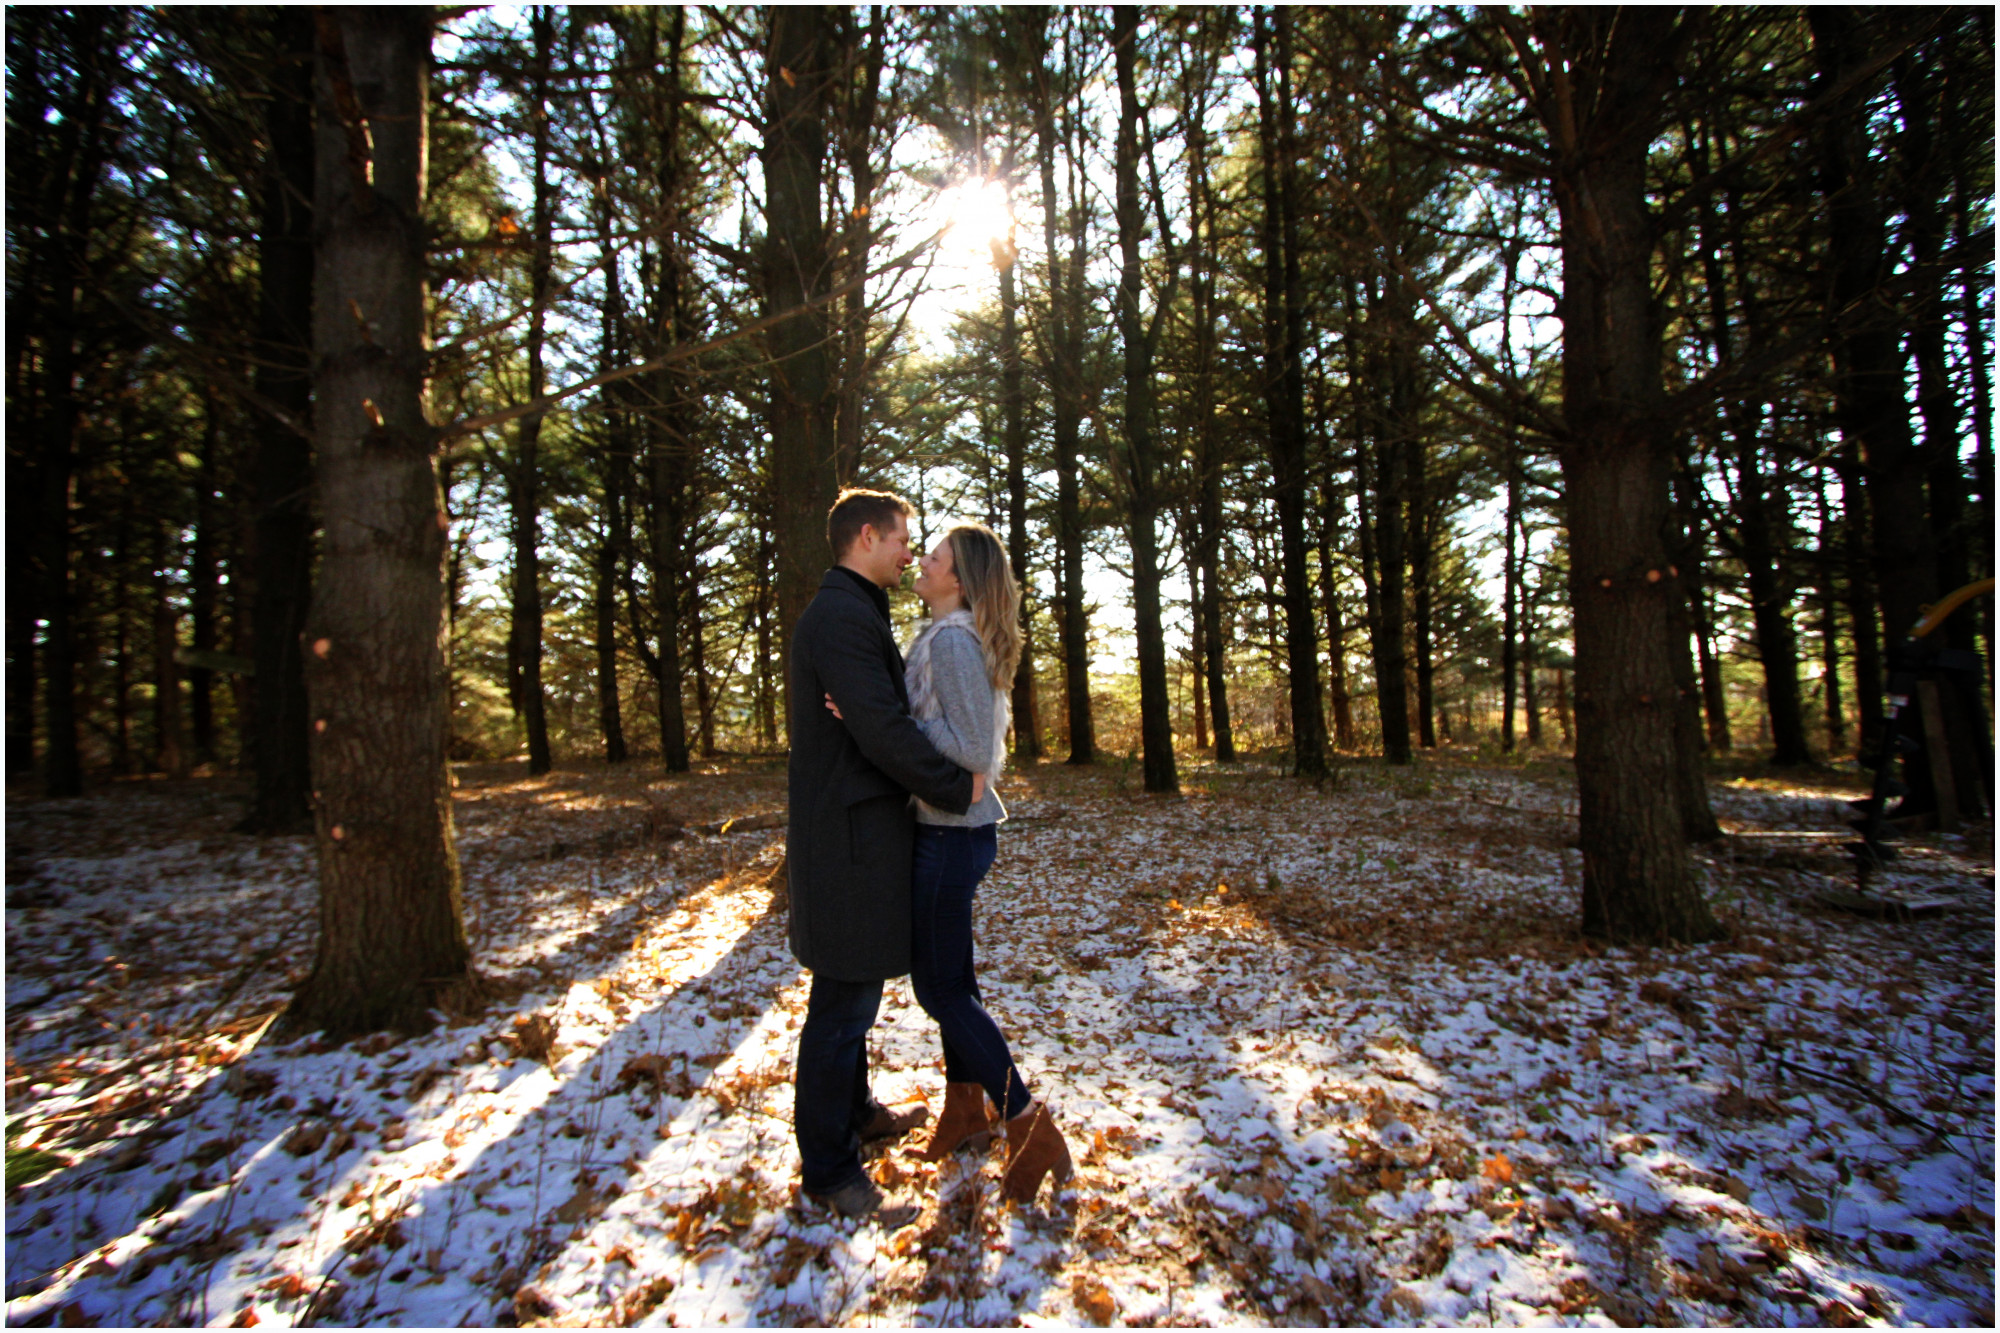 husband kissing wife in woods